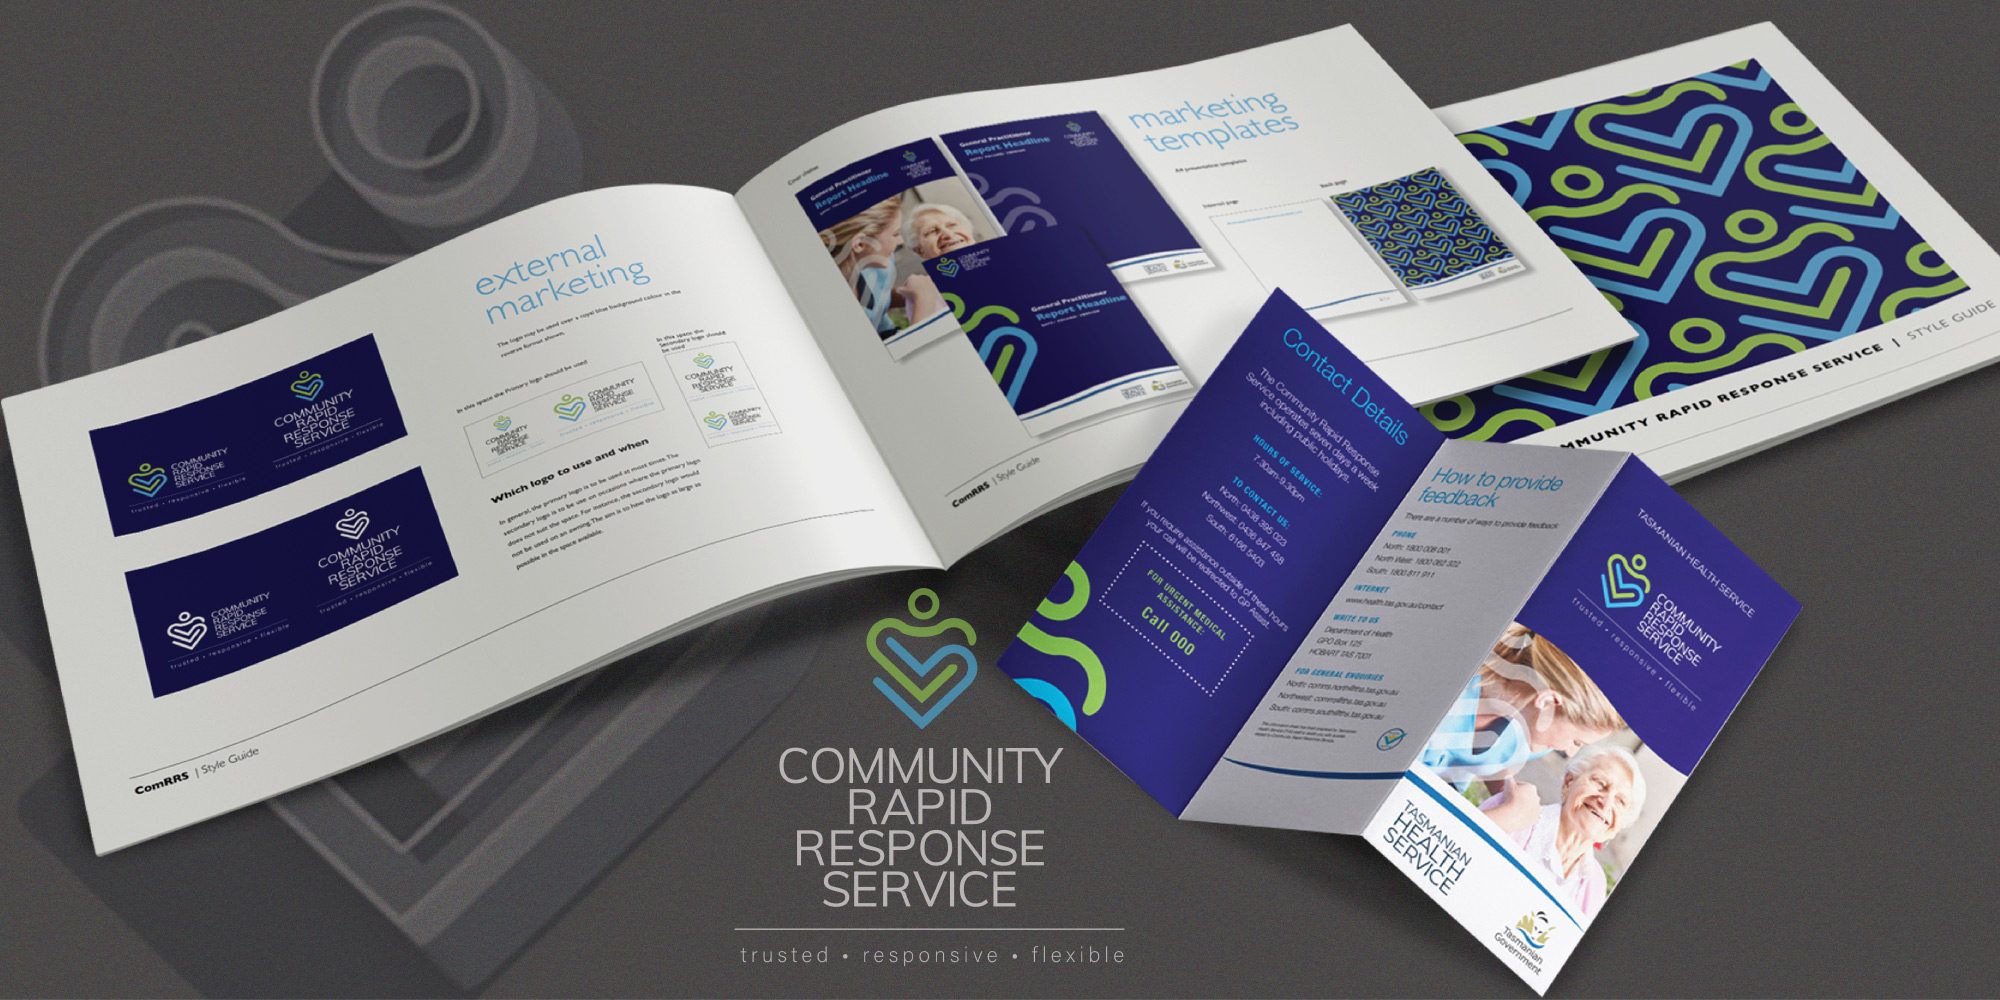 CRSS Printed Collateral